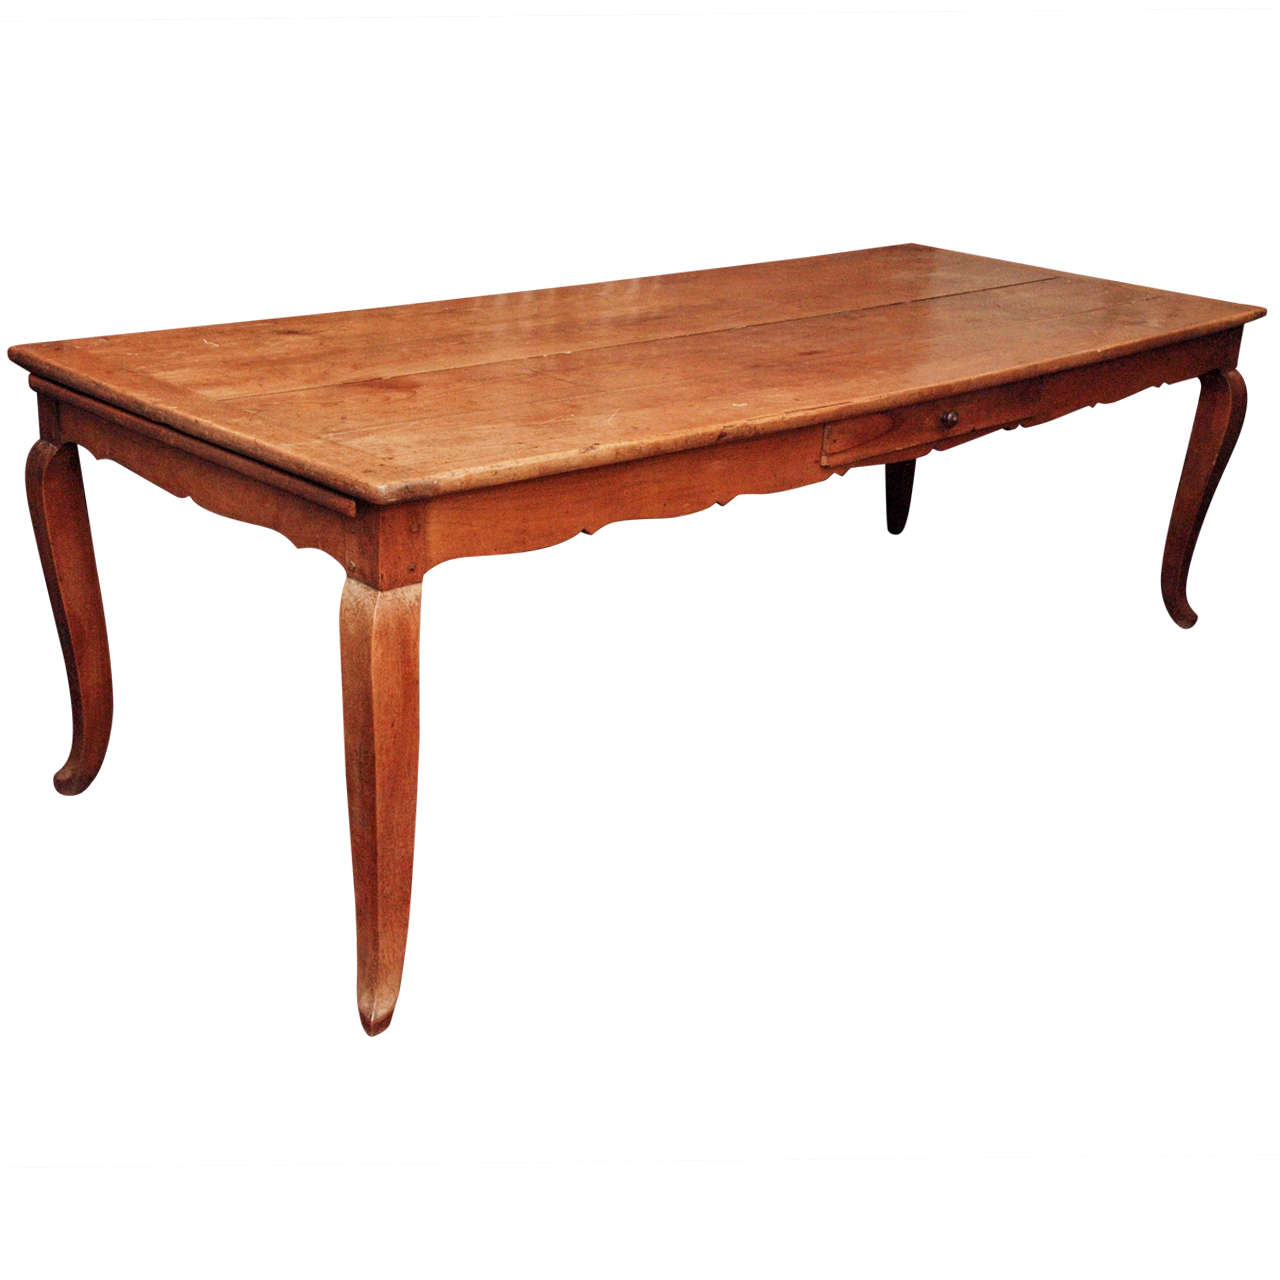 A Large French Provincial Dining Table At 1stdibs